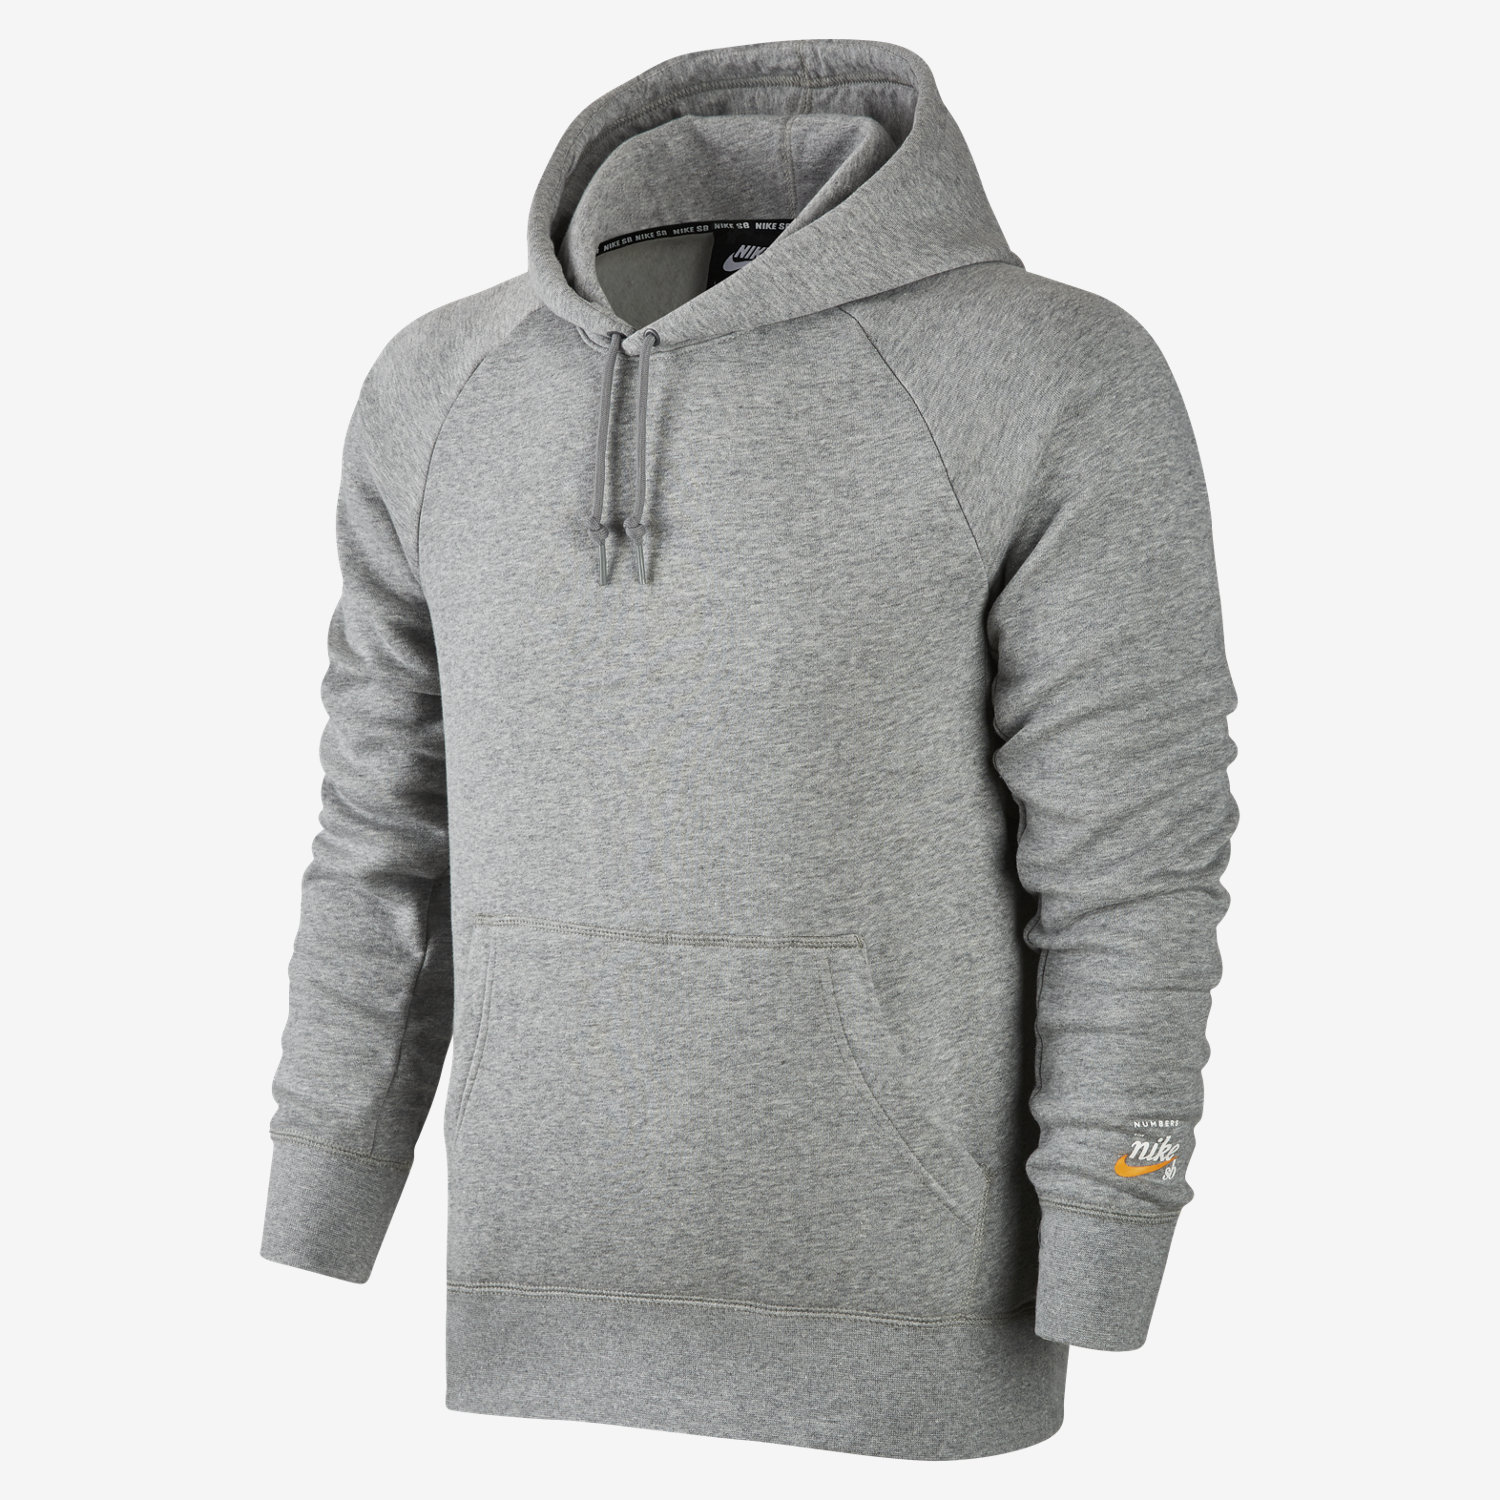 Men's Hoodies. Nike.com